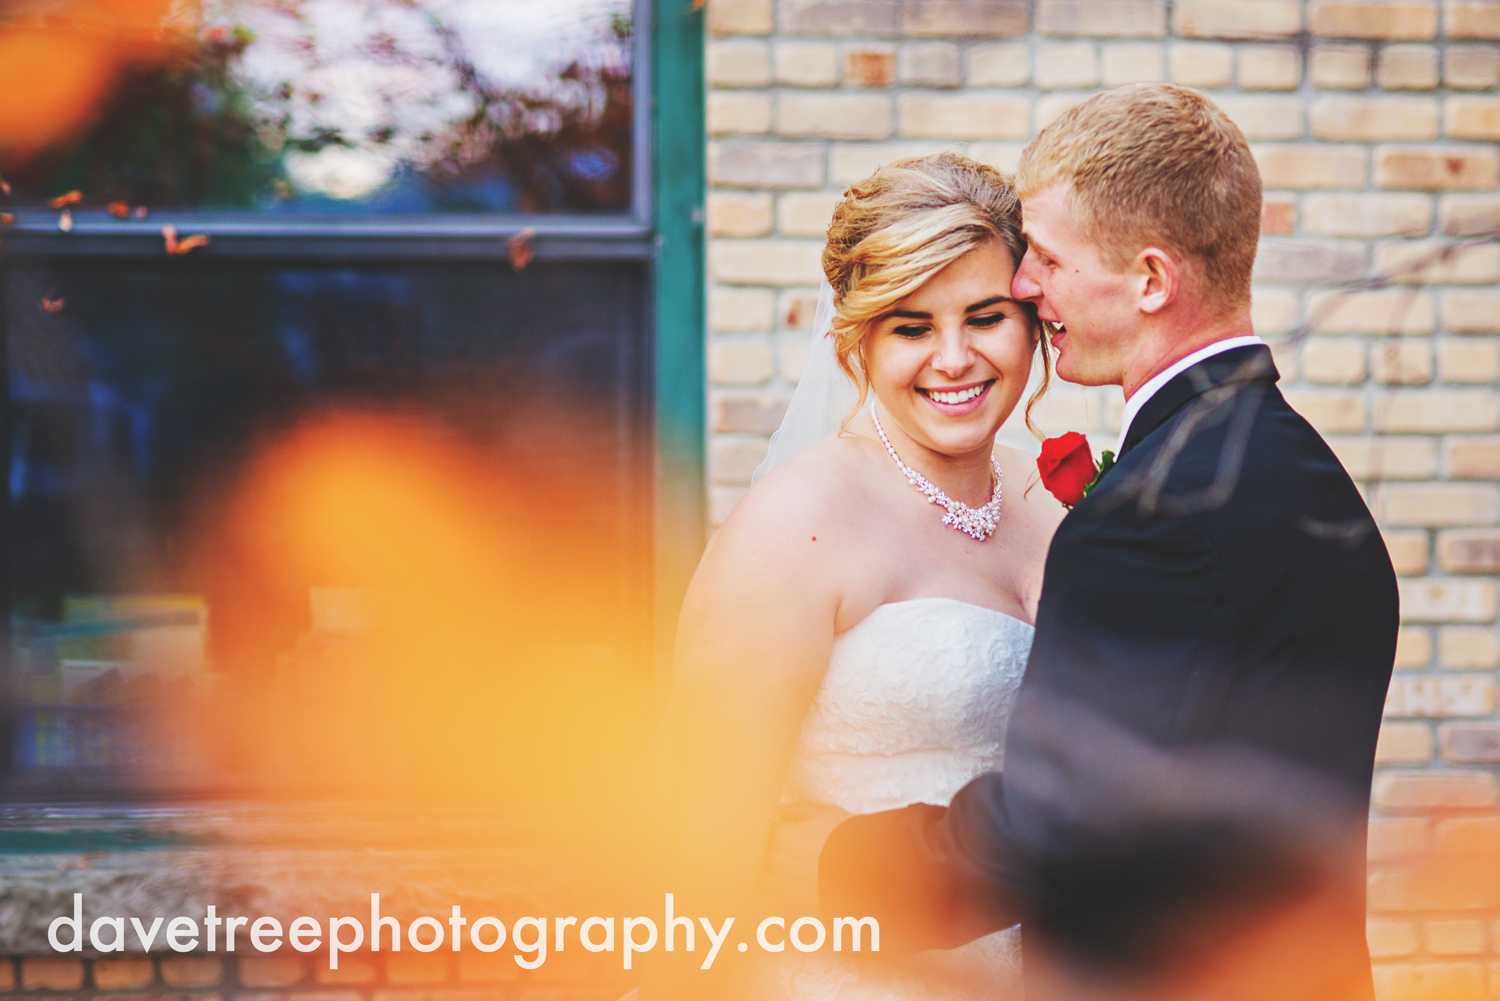 holland_wedding_photographer_24.jpg